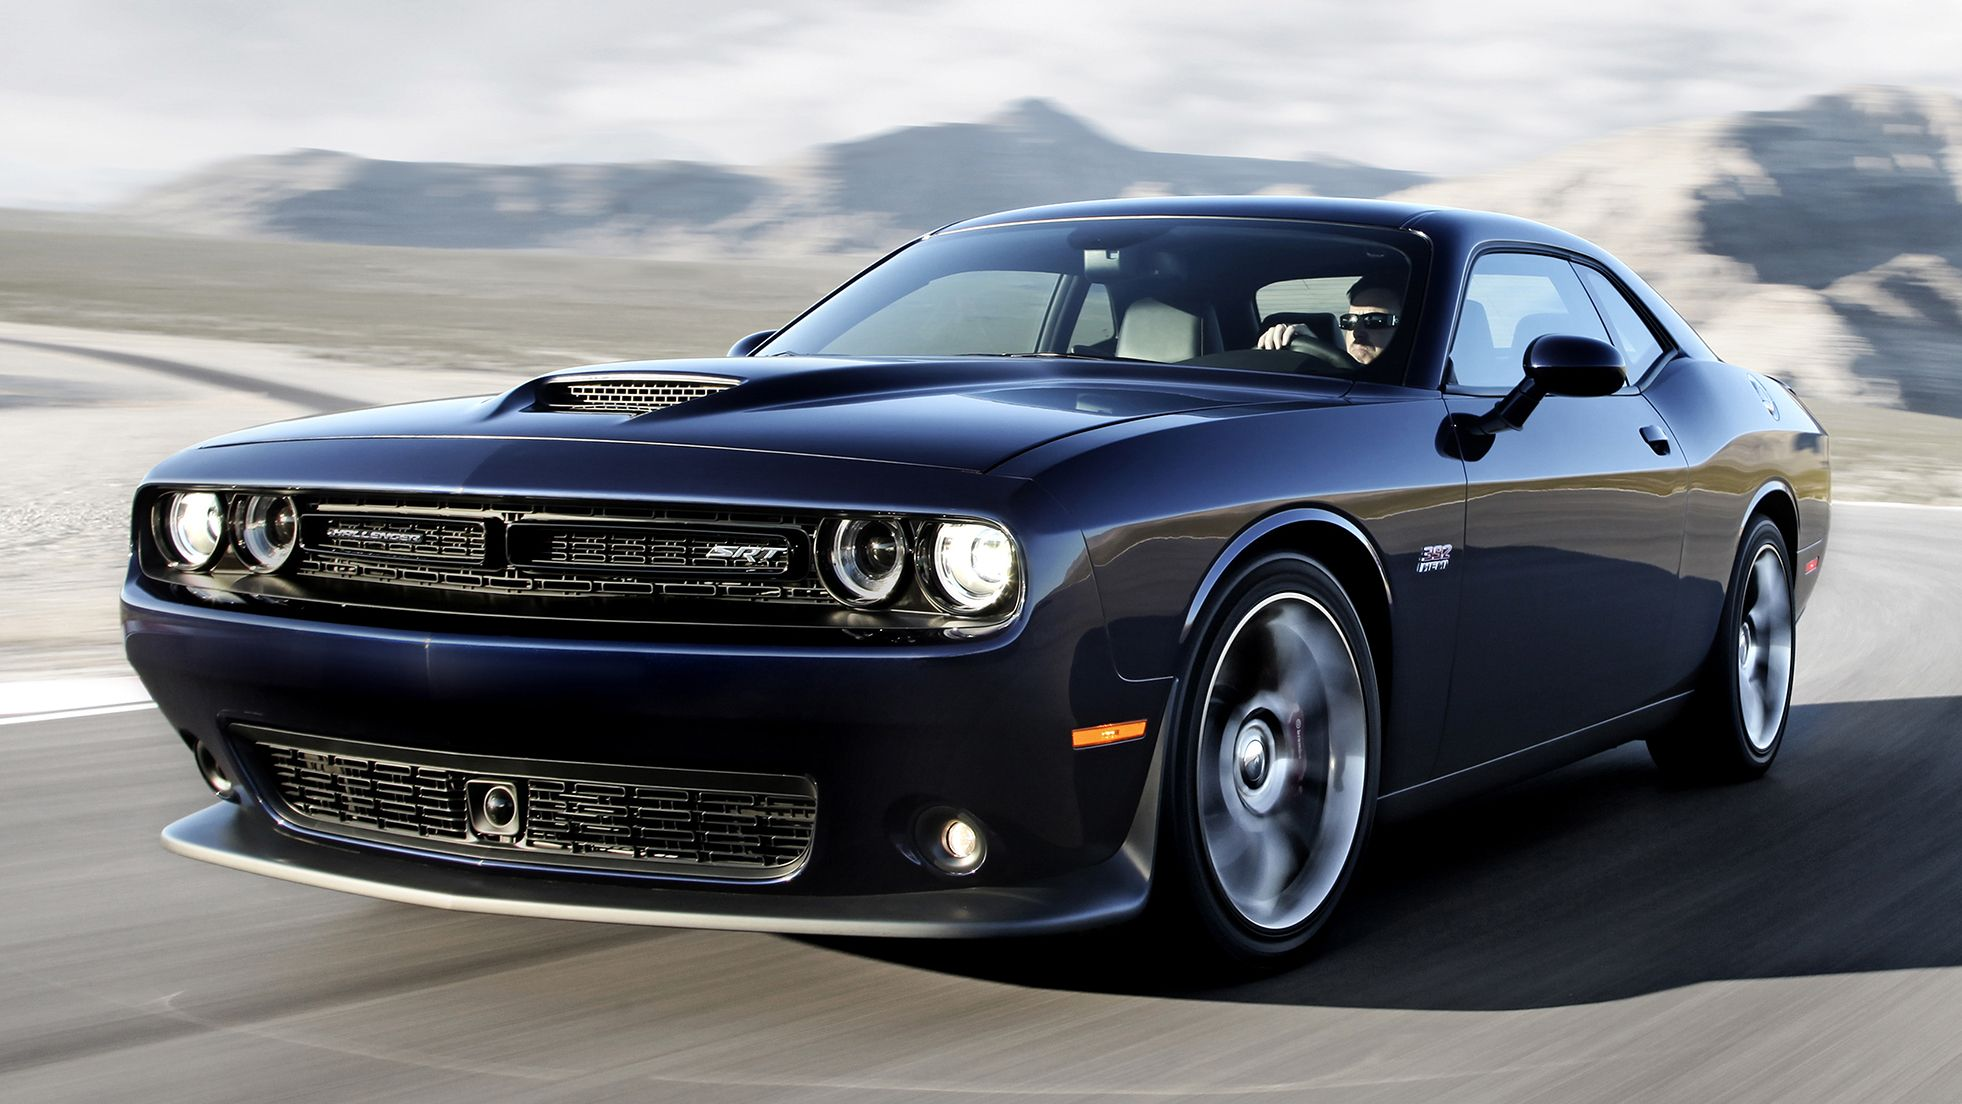 Dodge challenger 2015 black pict of car